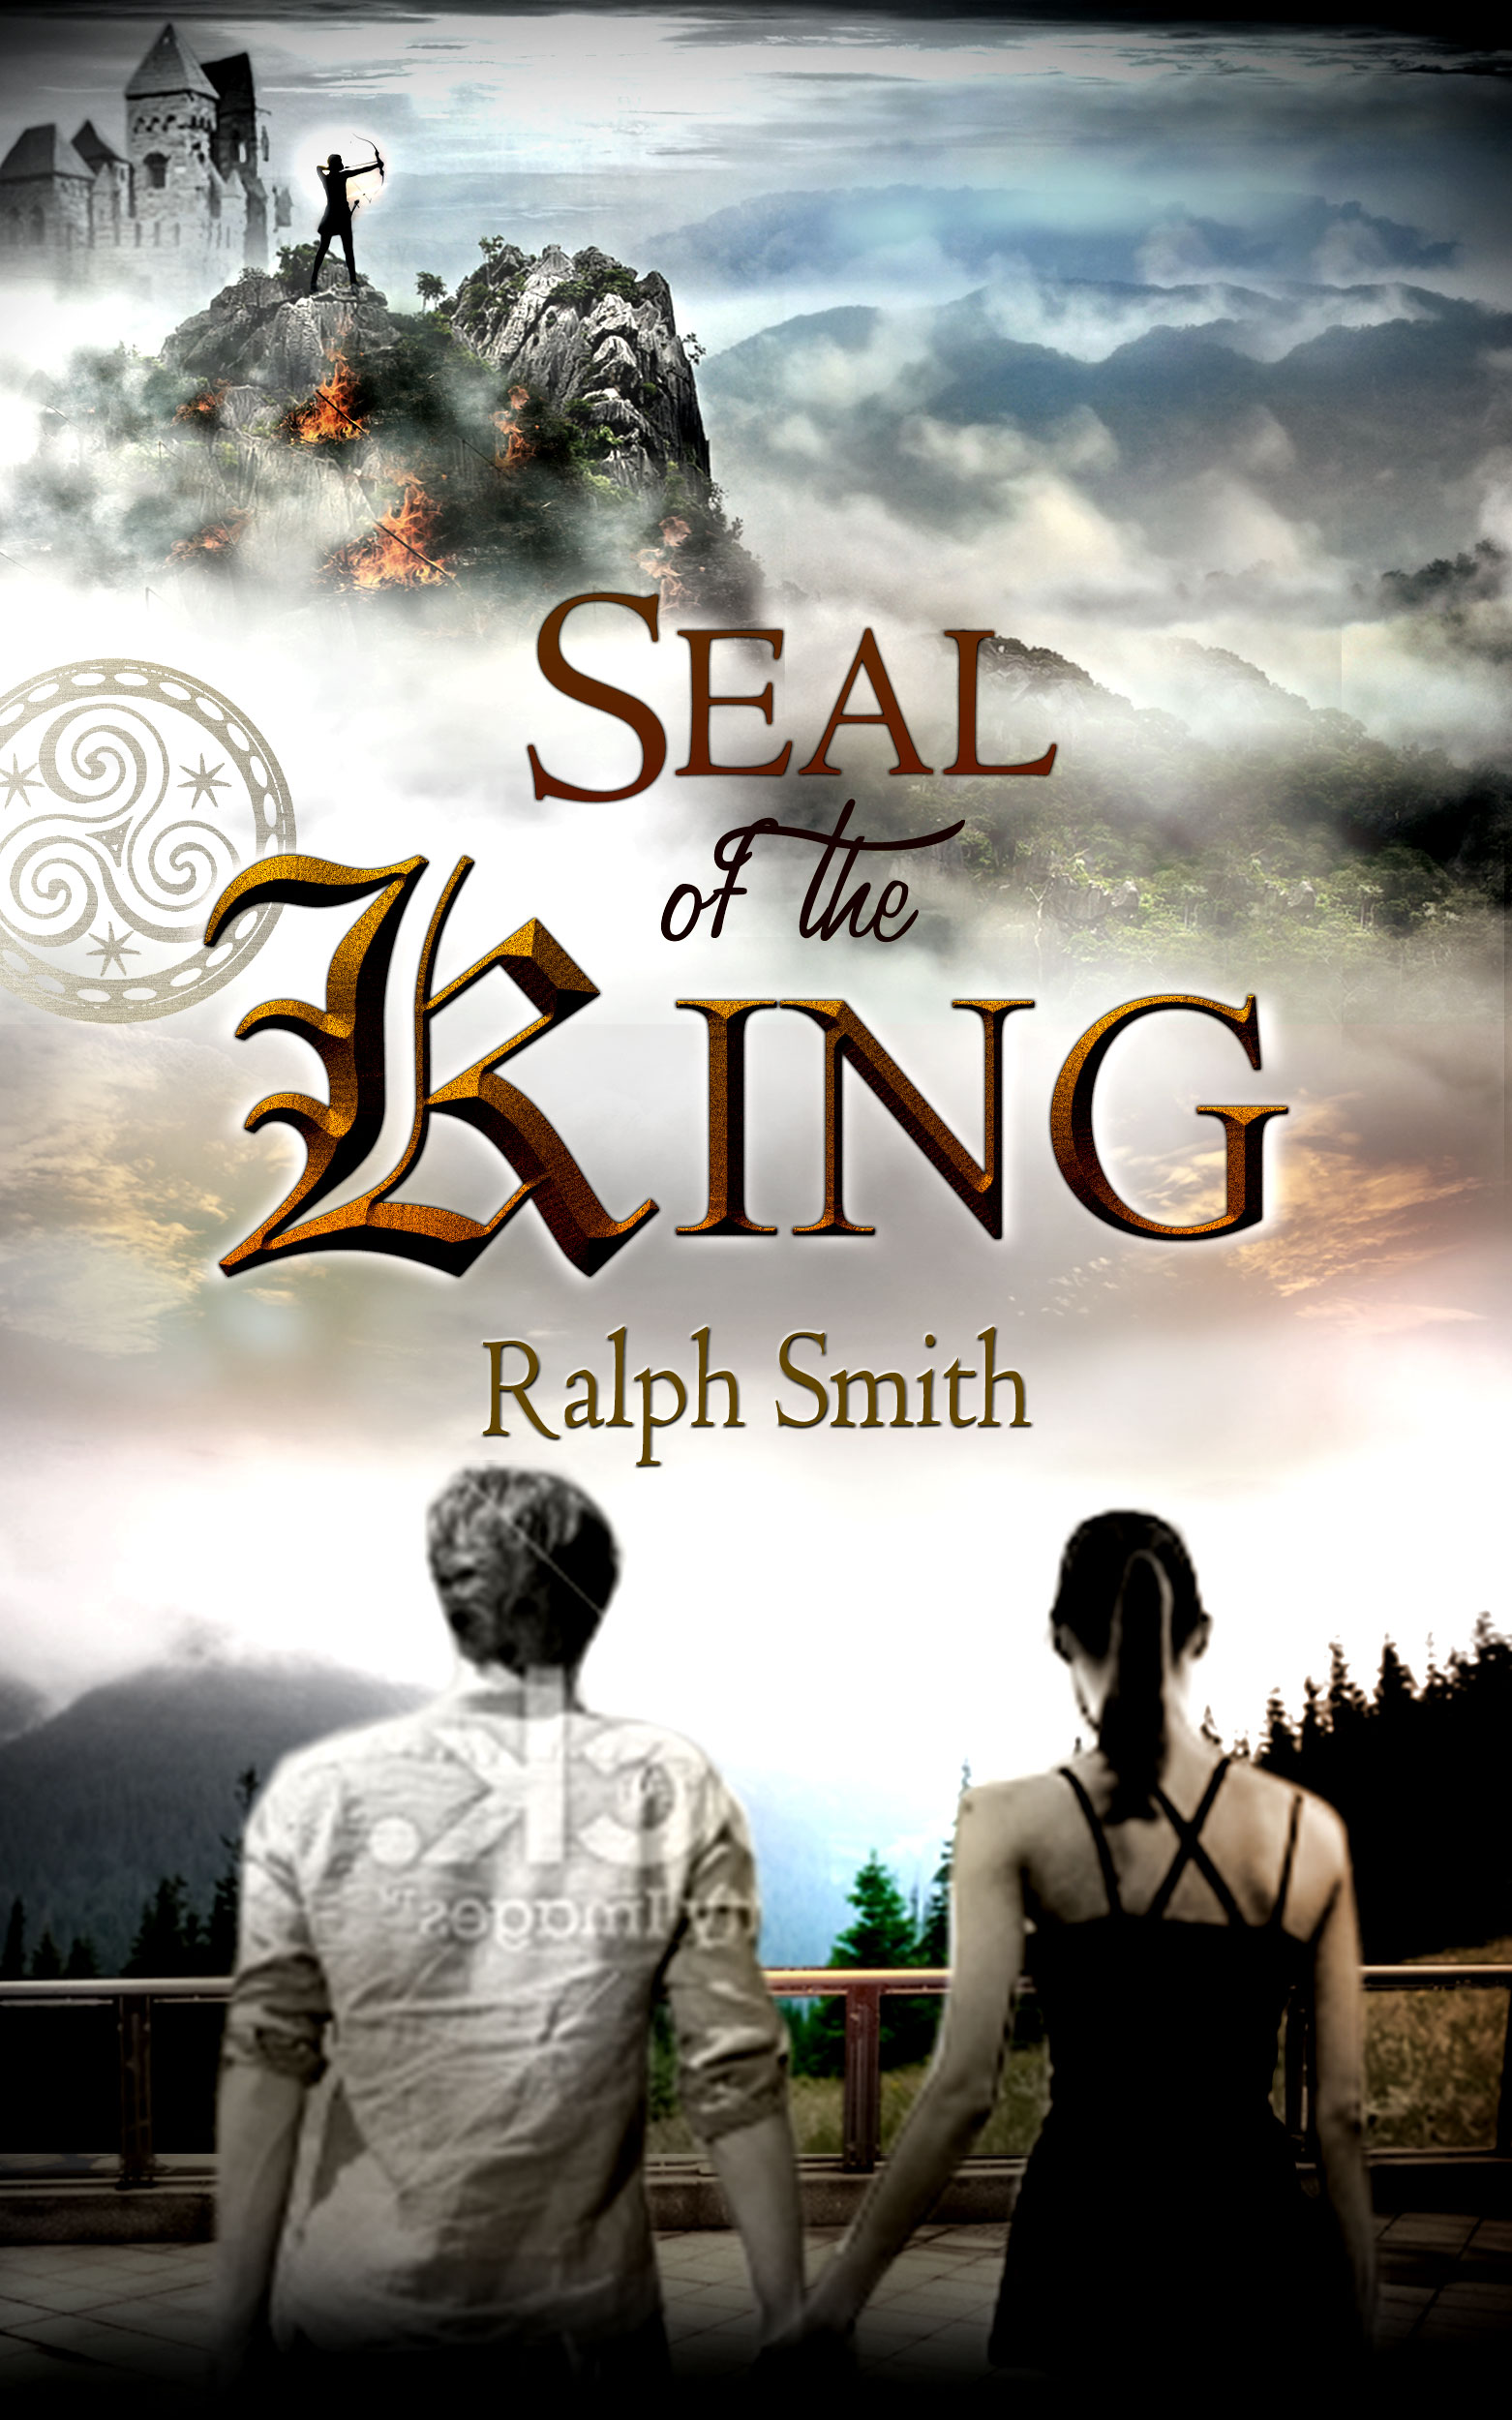 5.0 out of 5 stars Great Romantic Adventure Story